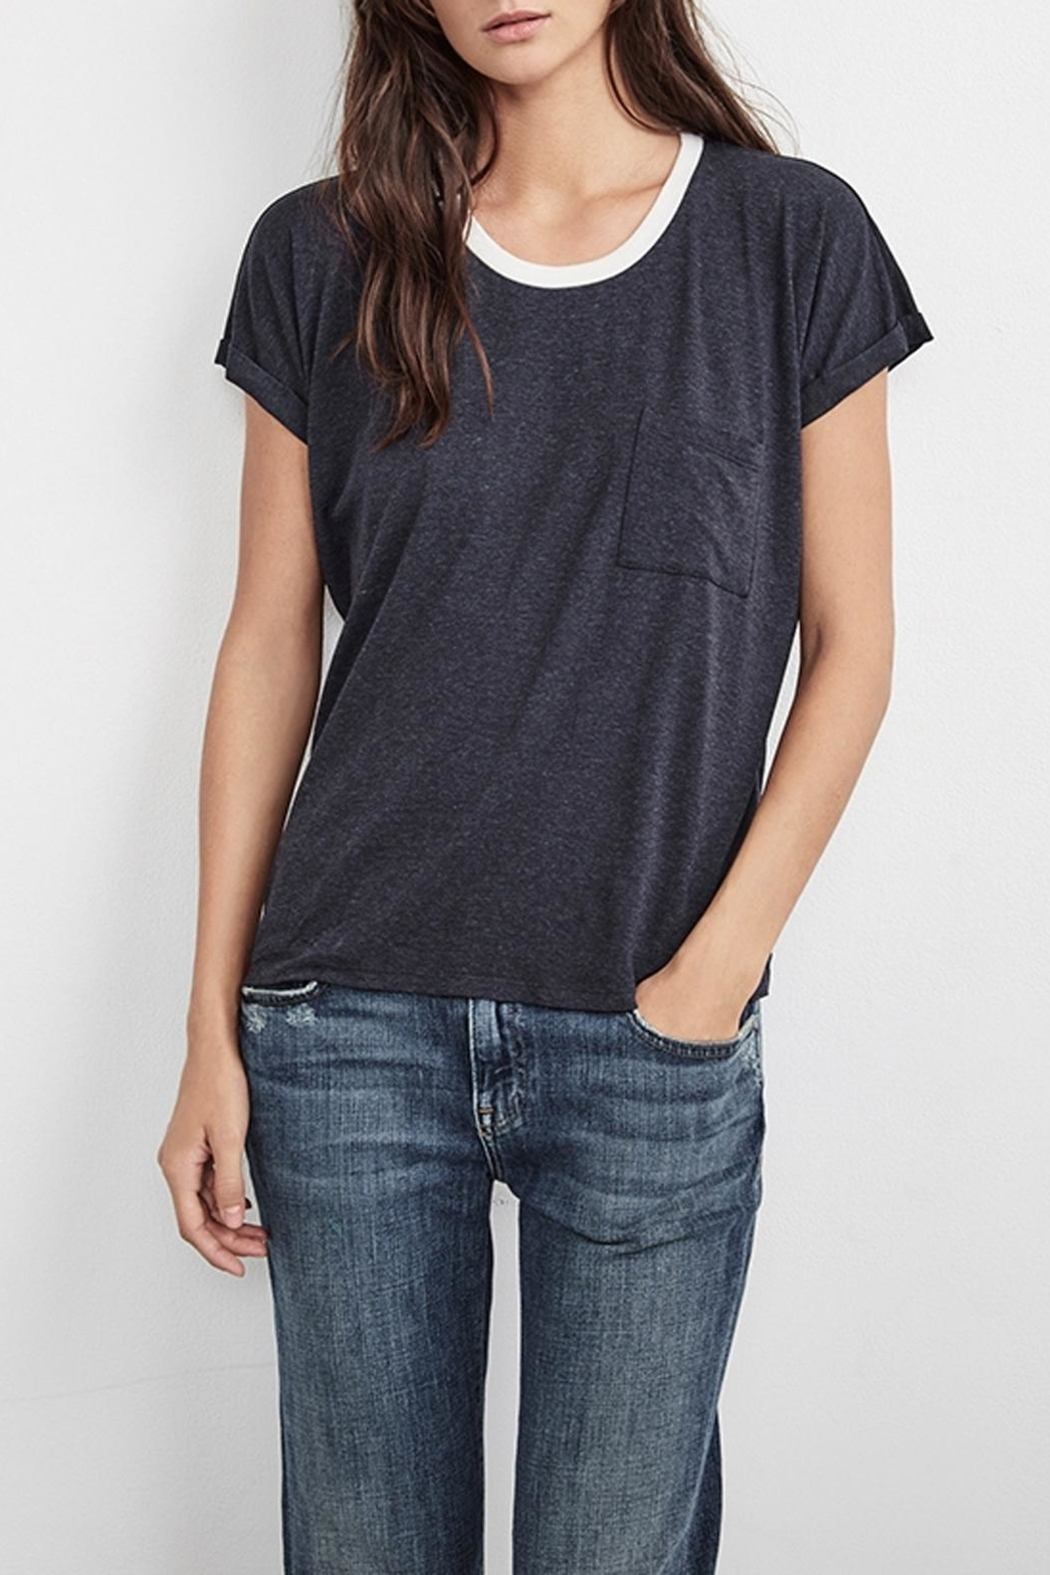 Velvet Annamae Contrast Top - Front Cropped Image